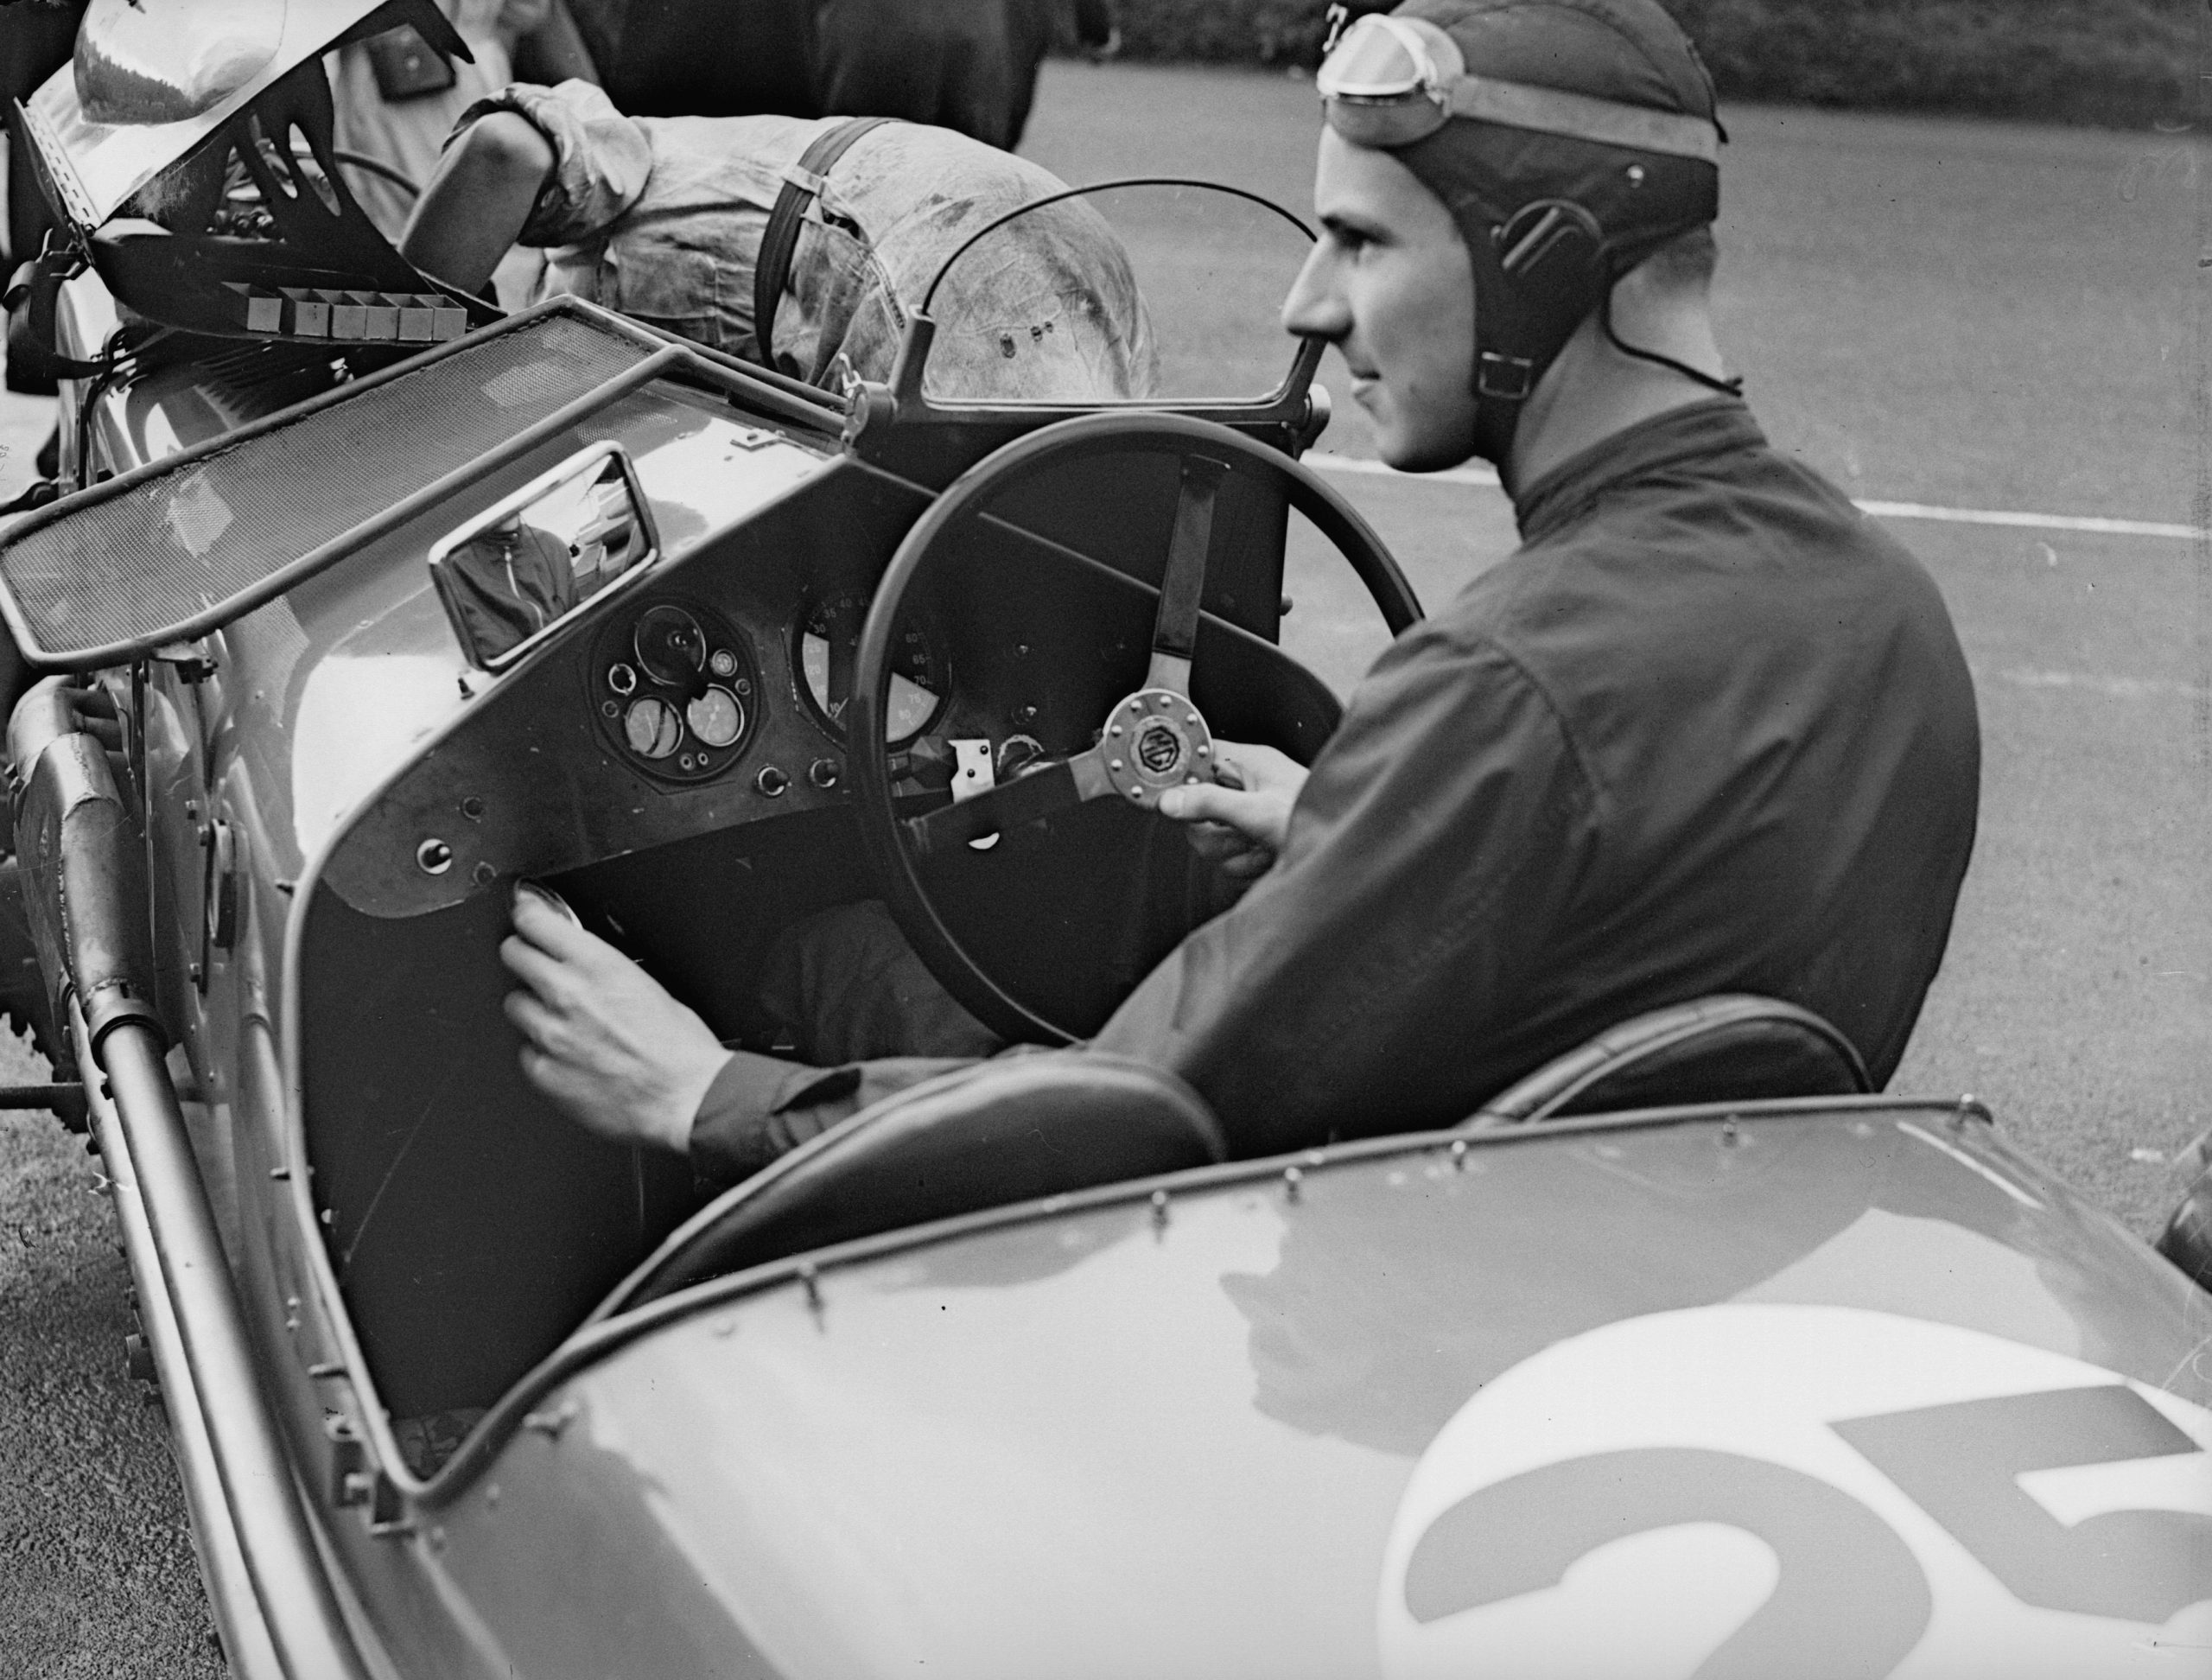 Richard Seaman in MG racecar